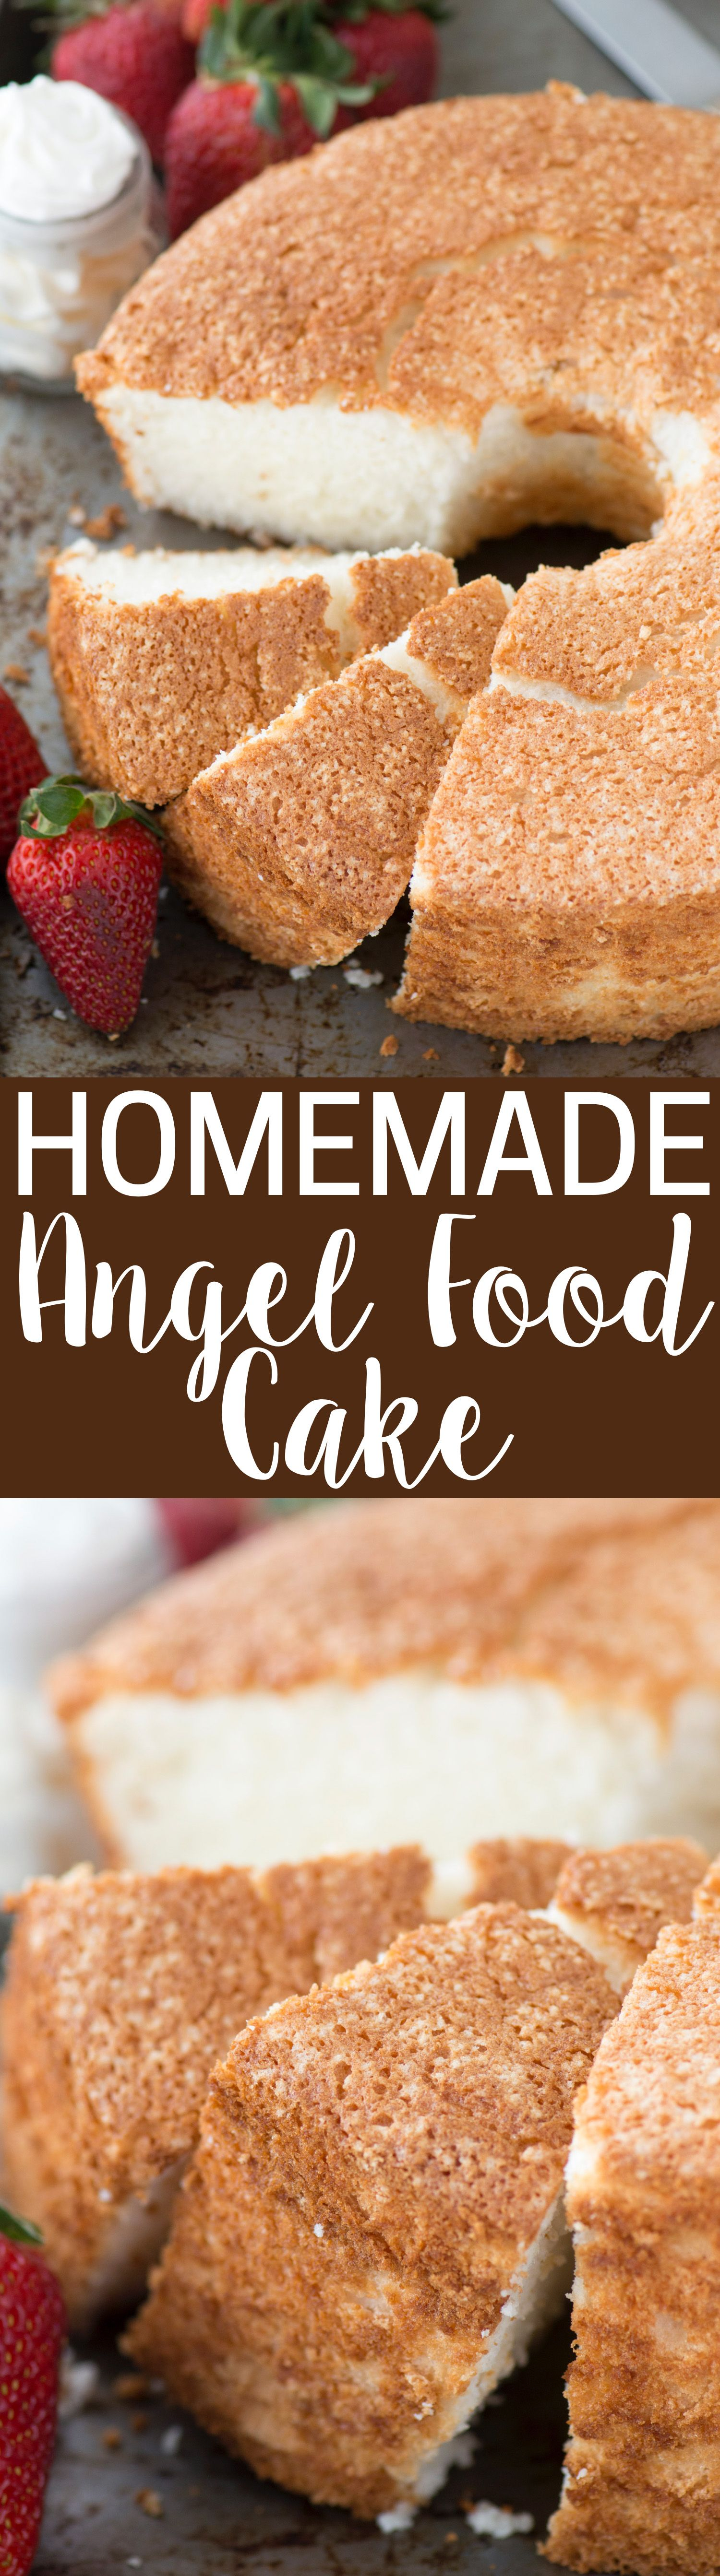 100 homemade angel food cake This is the recipe that everyone will